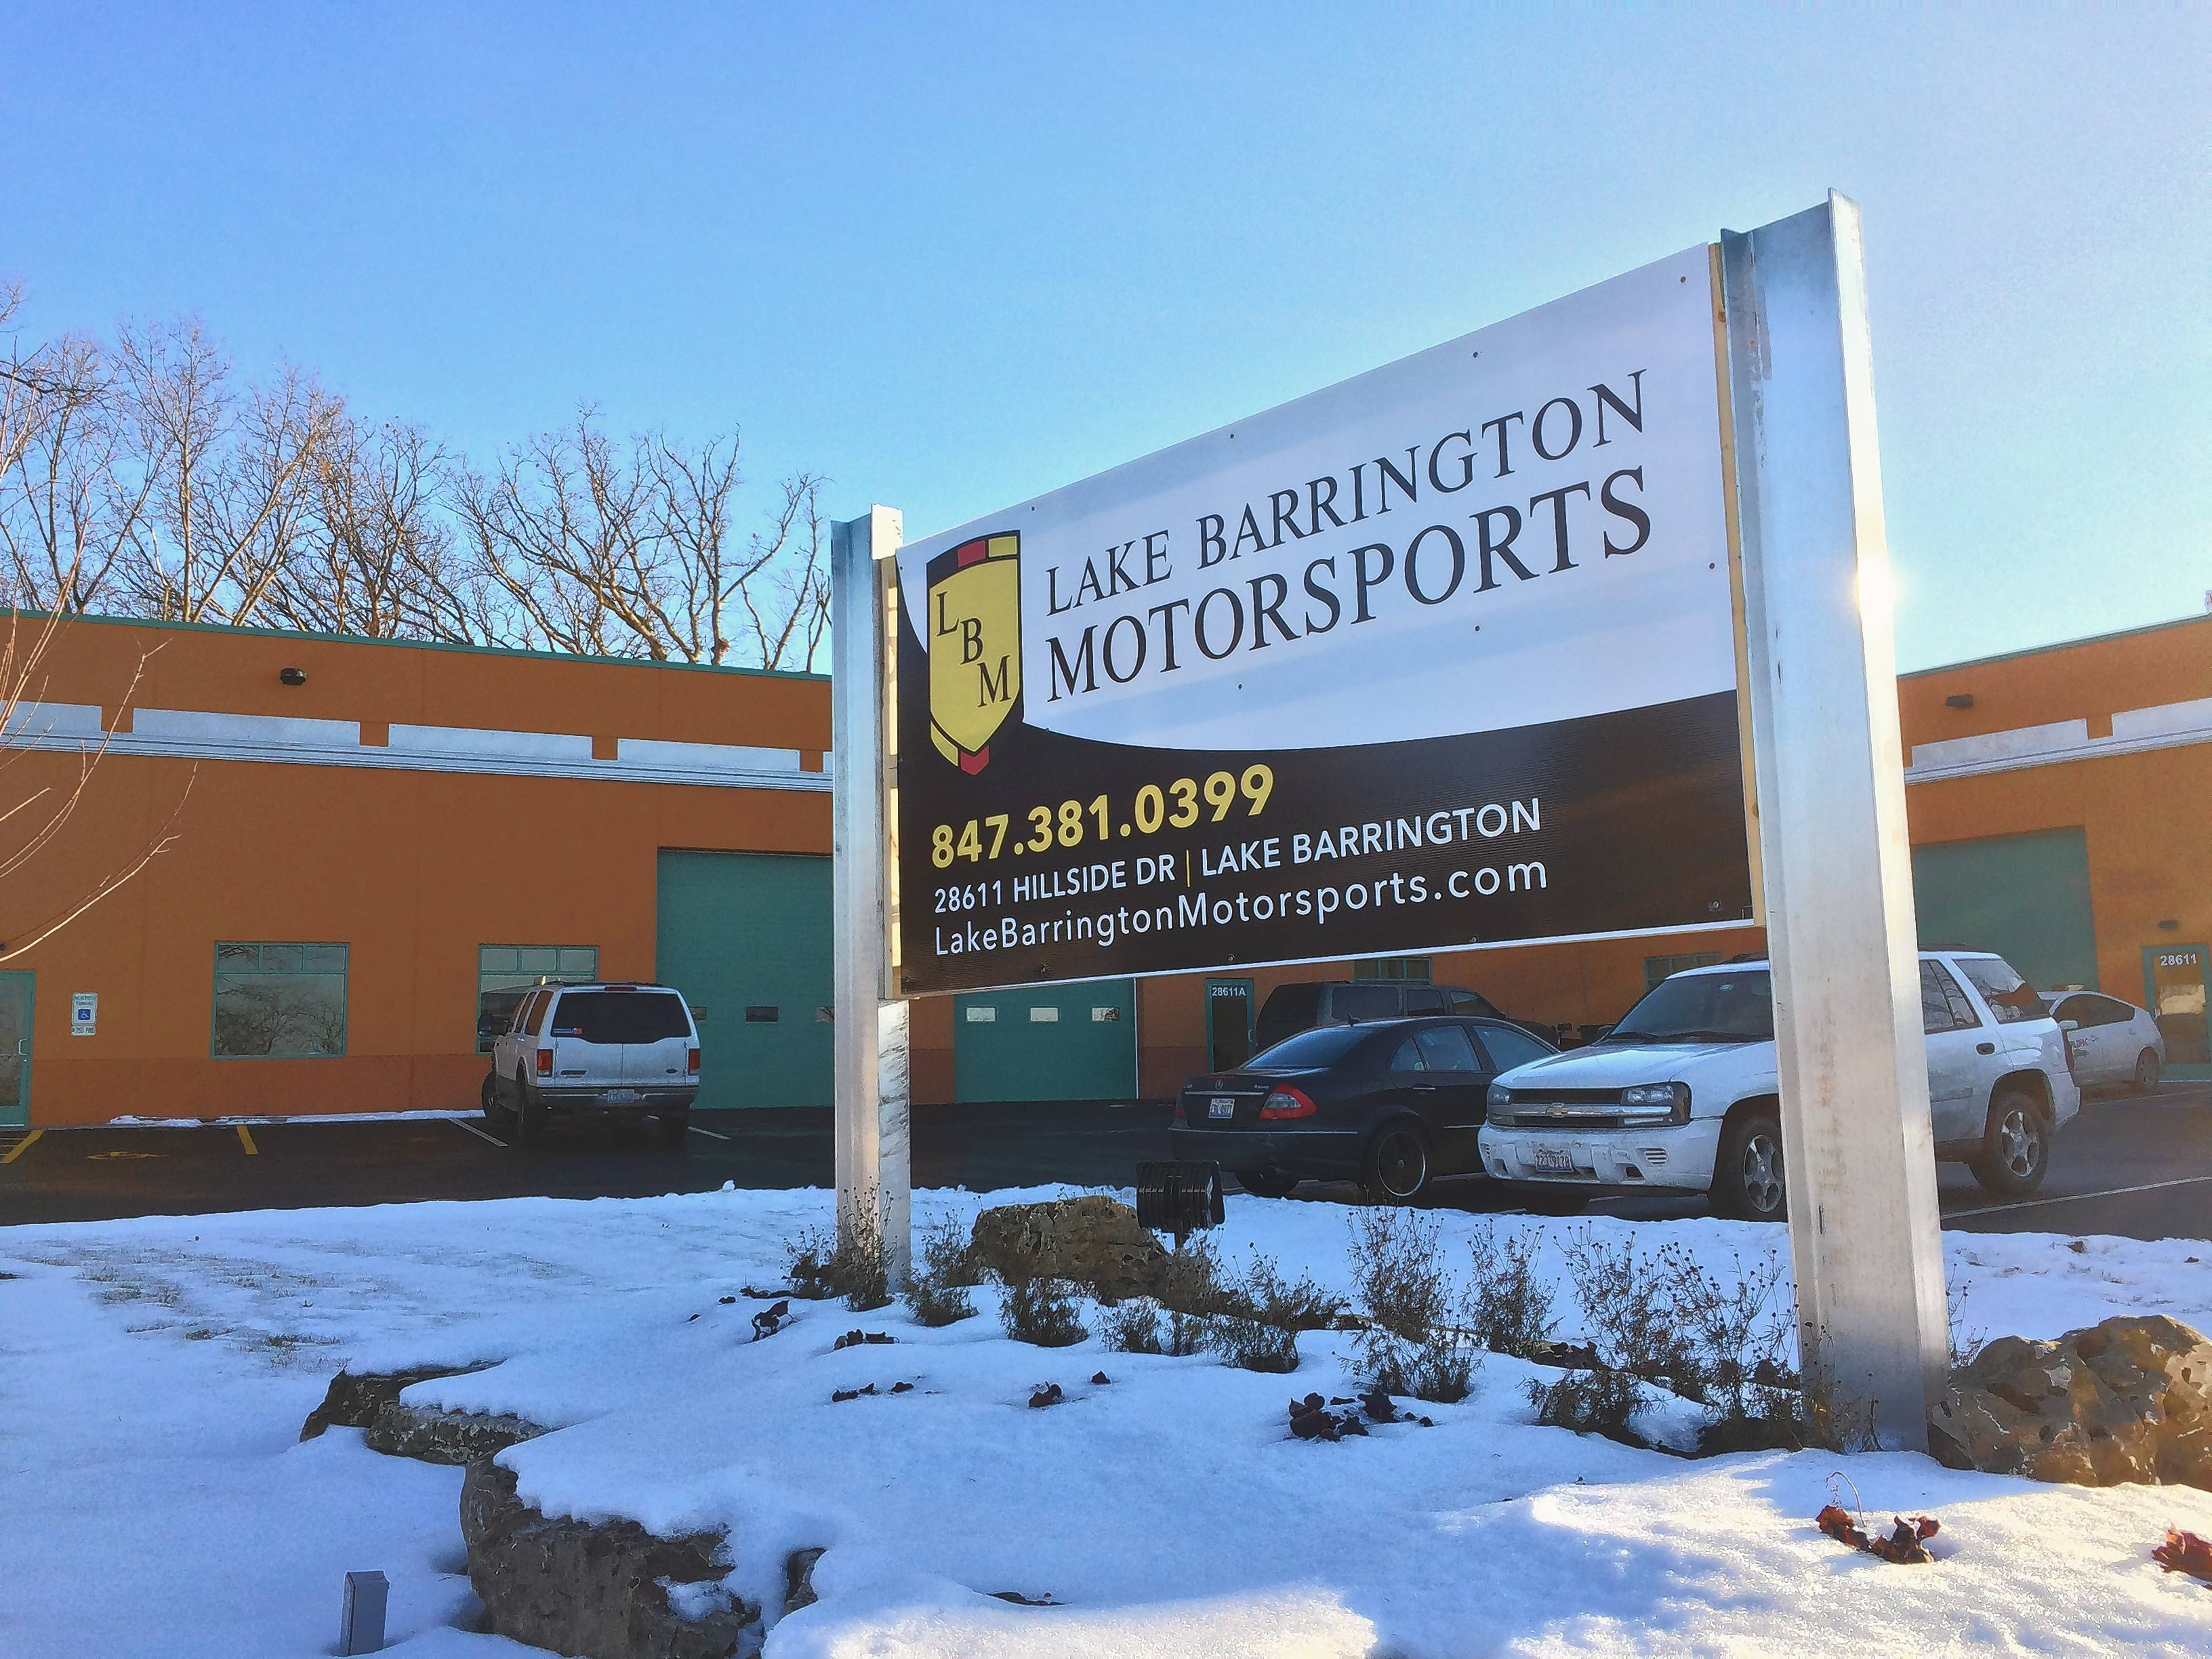 Lake Barrington Motorsports Director of Business Development Kathleen Scott said the business hopes to start selling high-end used cars by early spring. Open since December, Lake Barrington Motorsports is expanding from just repairs and maintenance of luxury cars.